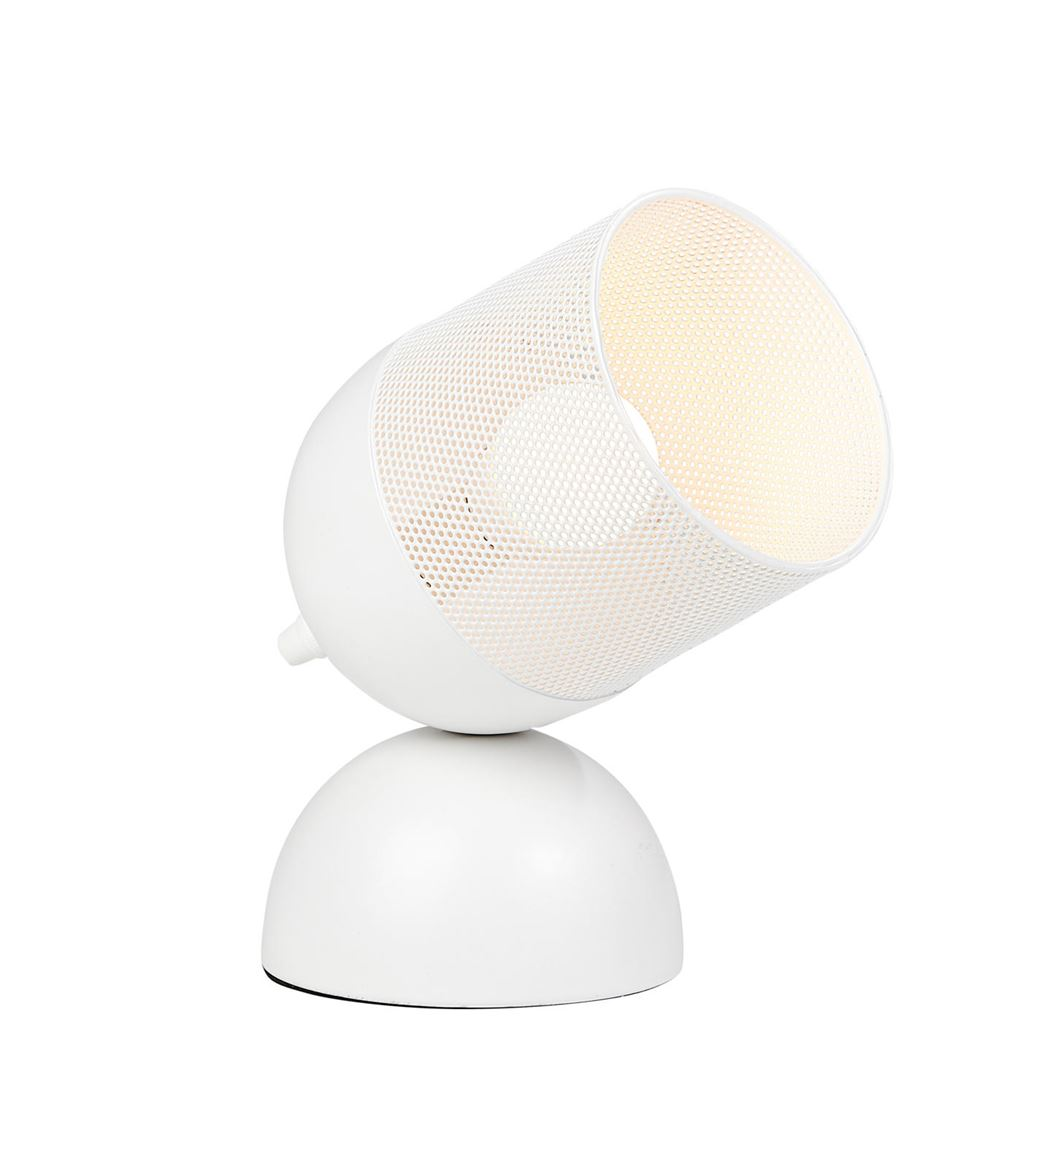 FLINT Lampe de table blanc H 26 x Larg. 20 x P 12 cm_flint-lampe-de-table-blanc-h-26-x-larg--20-x-p-12-cm